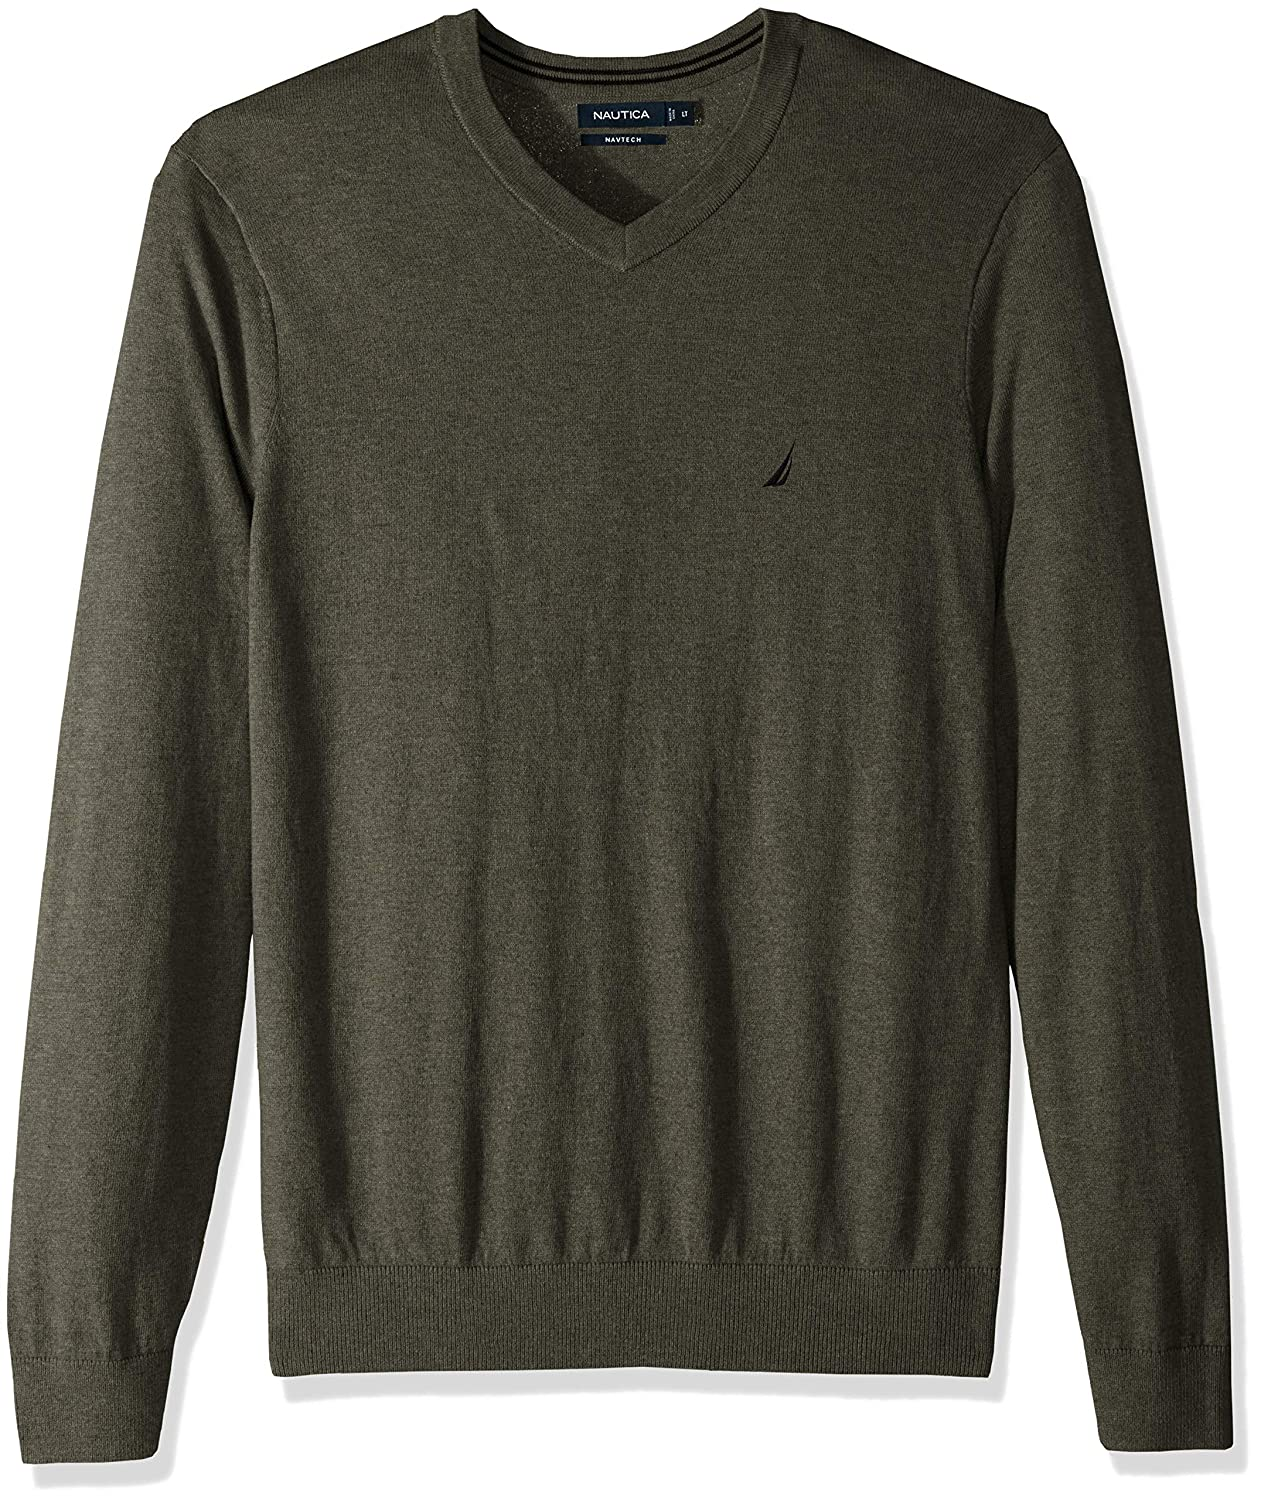 Nautica Men's Big and Tall Long Sleeve V Neck Jersey Sweater N83100